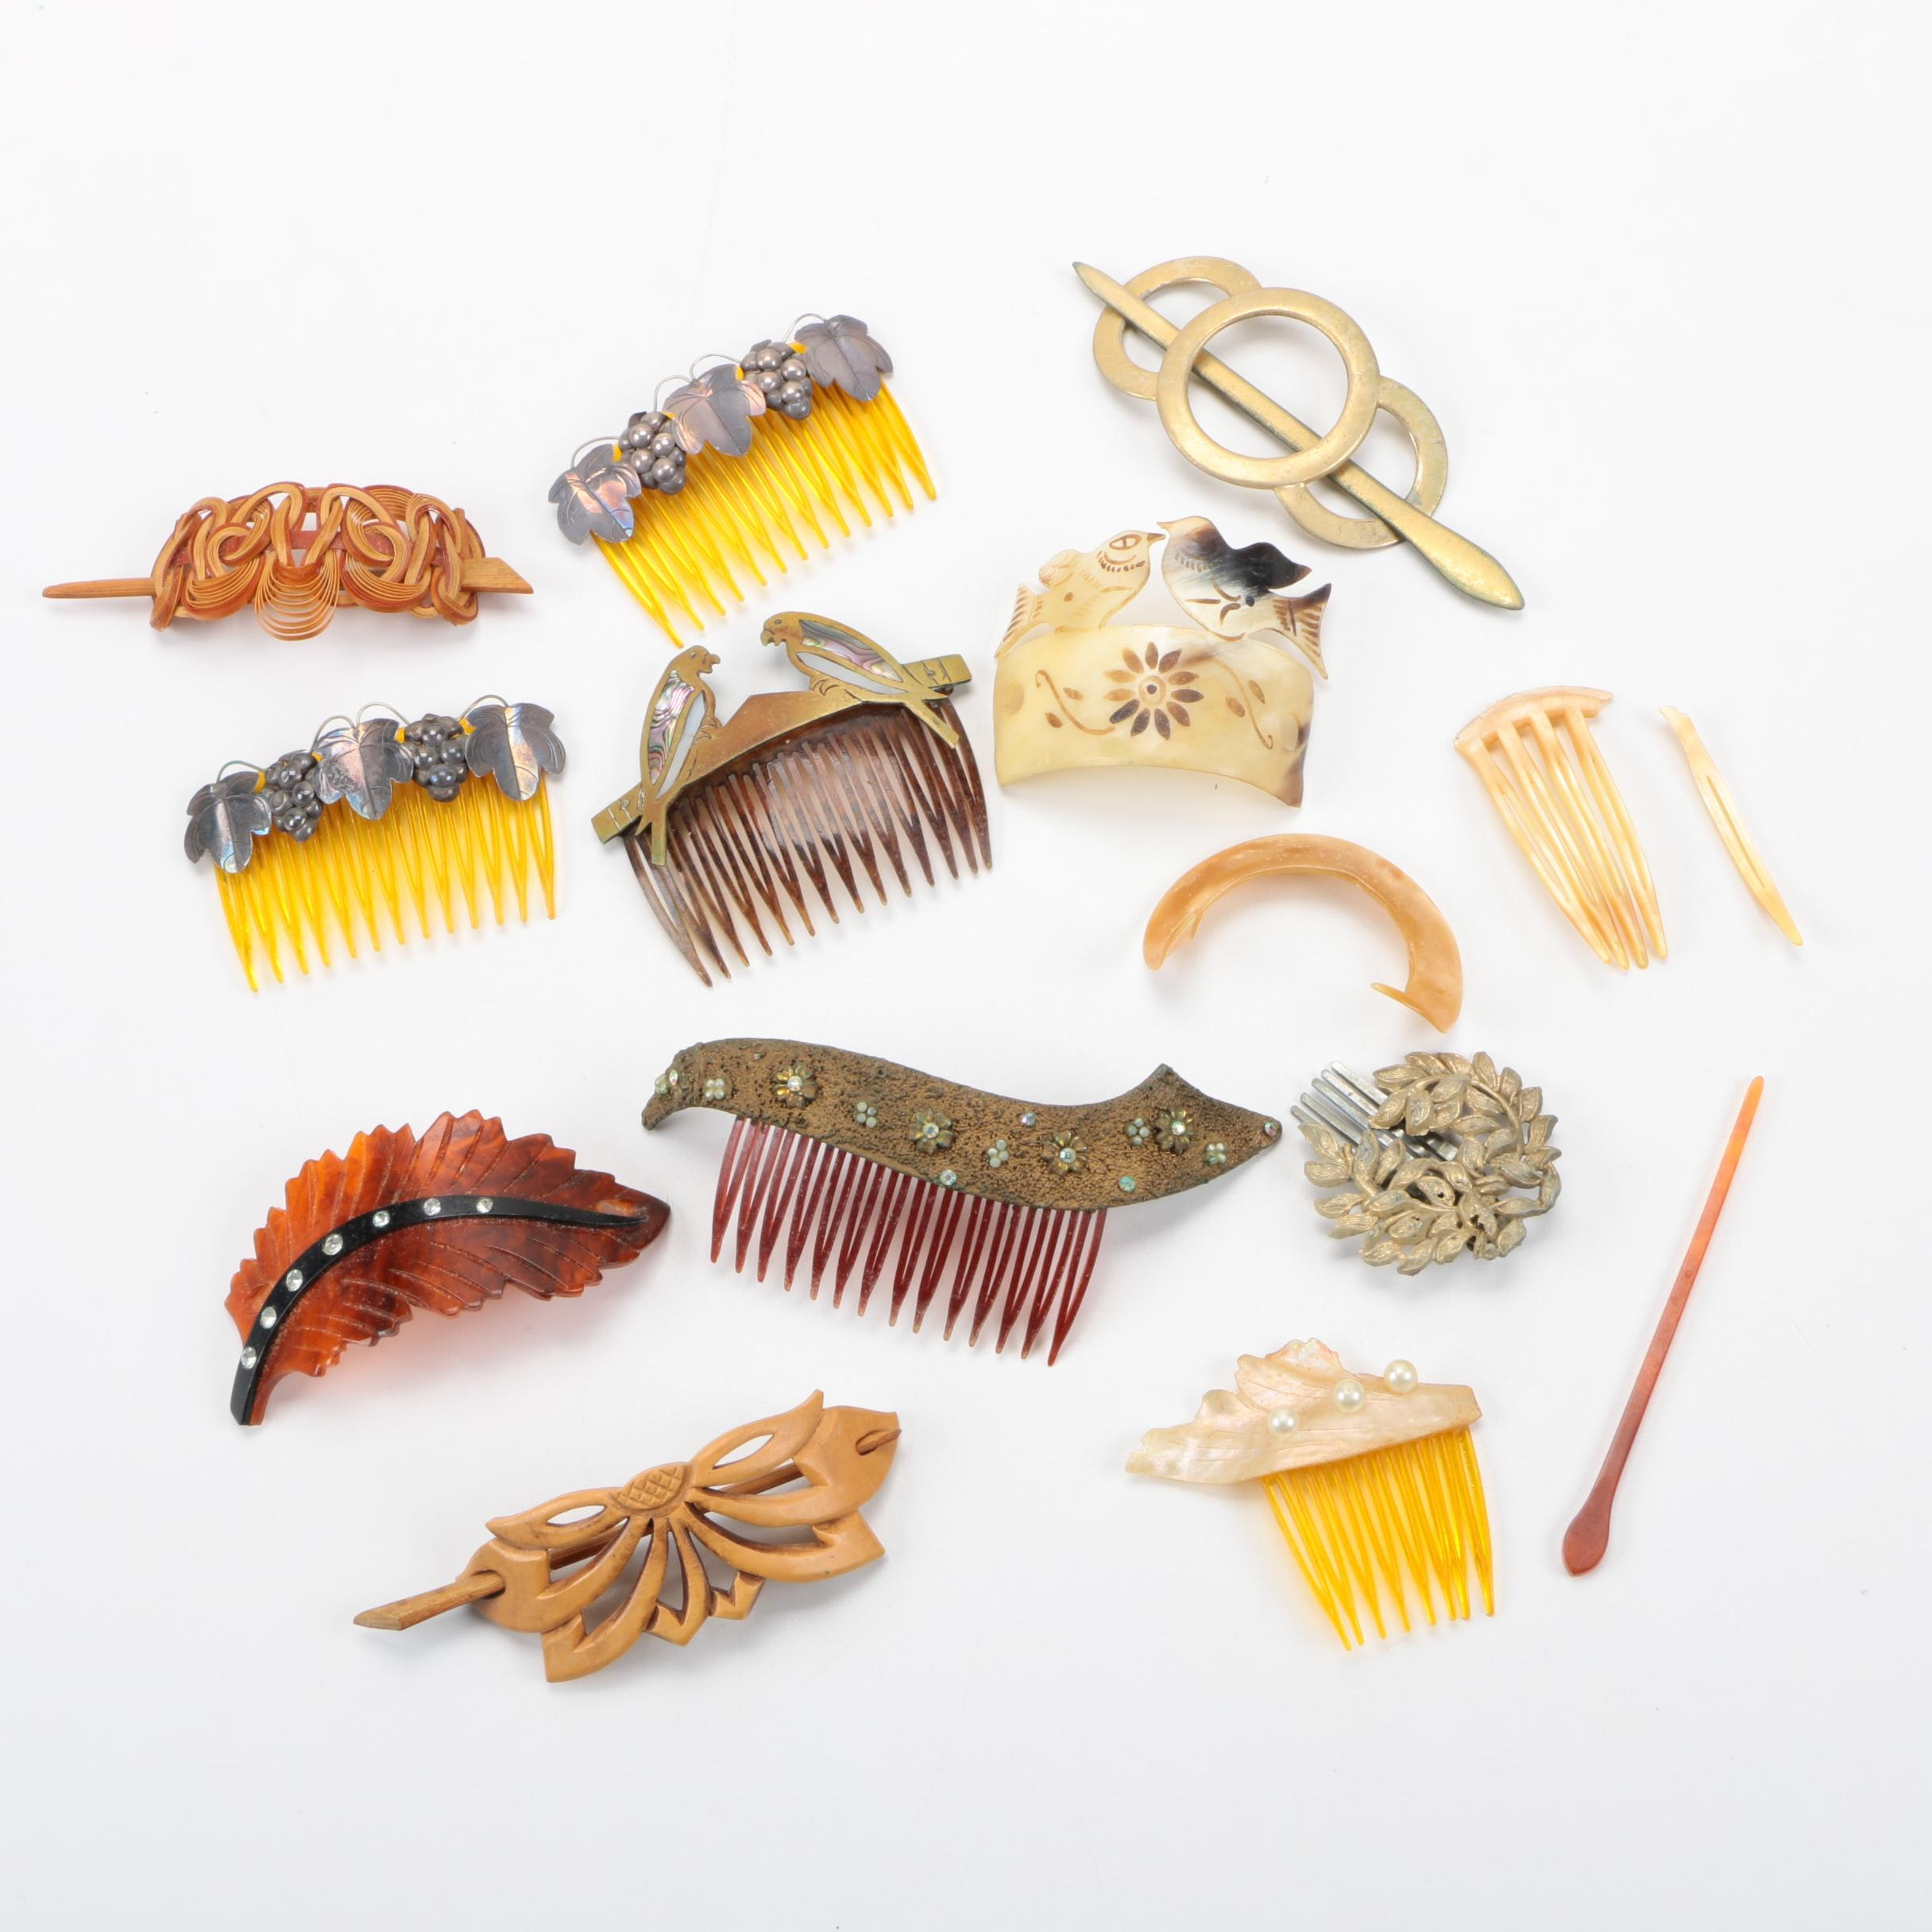 Vintage Hair Combs and Accessories